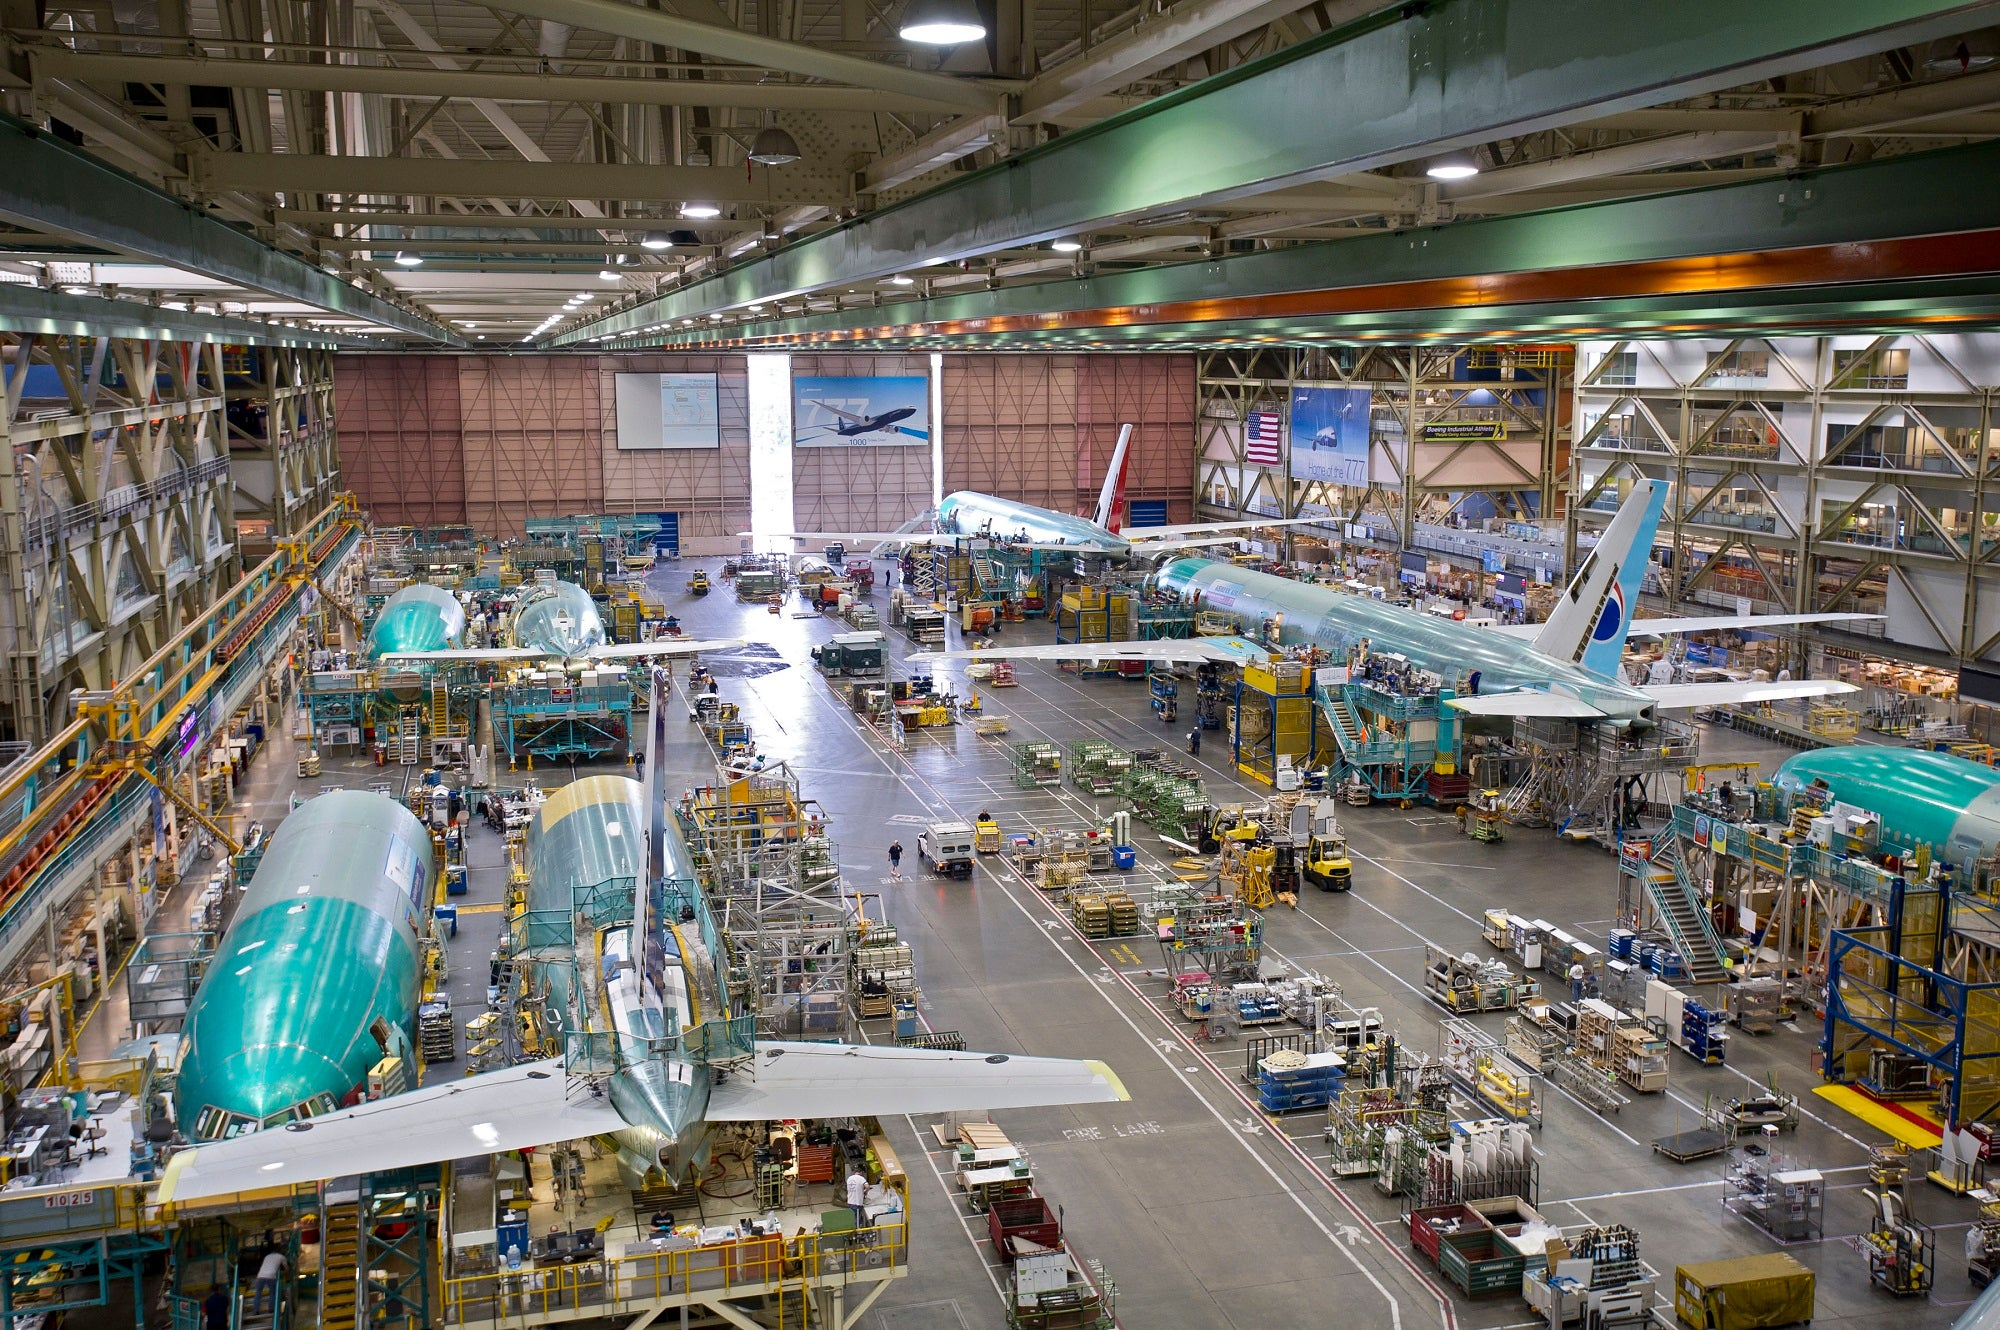 Boeing's Top 777X Customer Expresses Doubts the Plane Will Arrive on Time | The Motley Fool